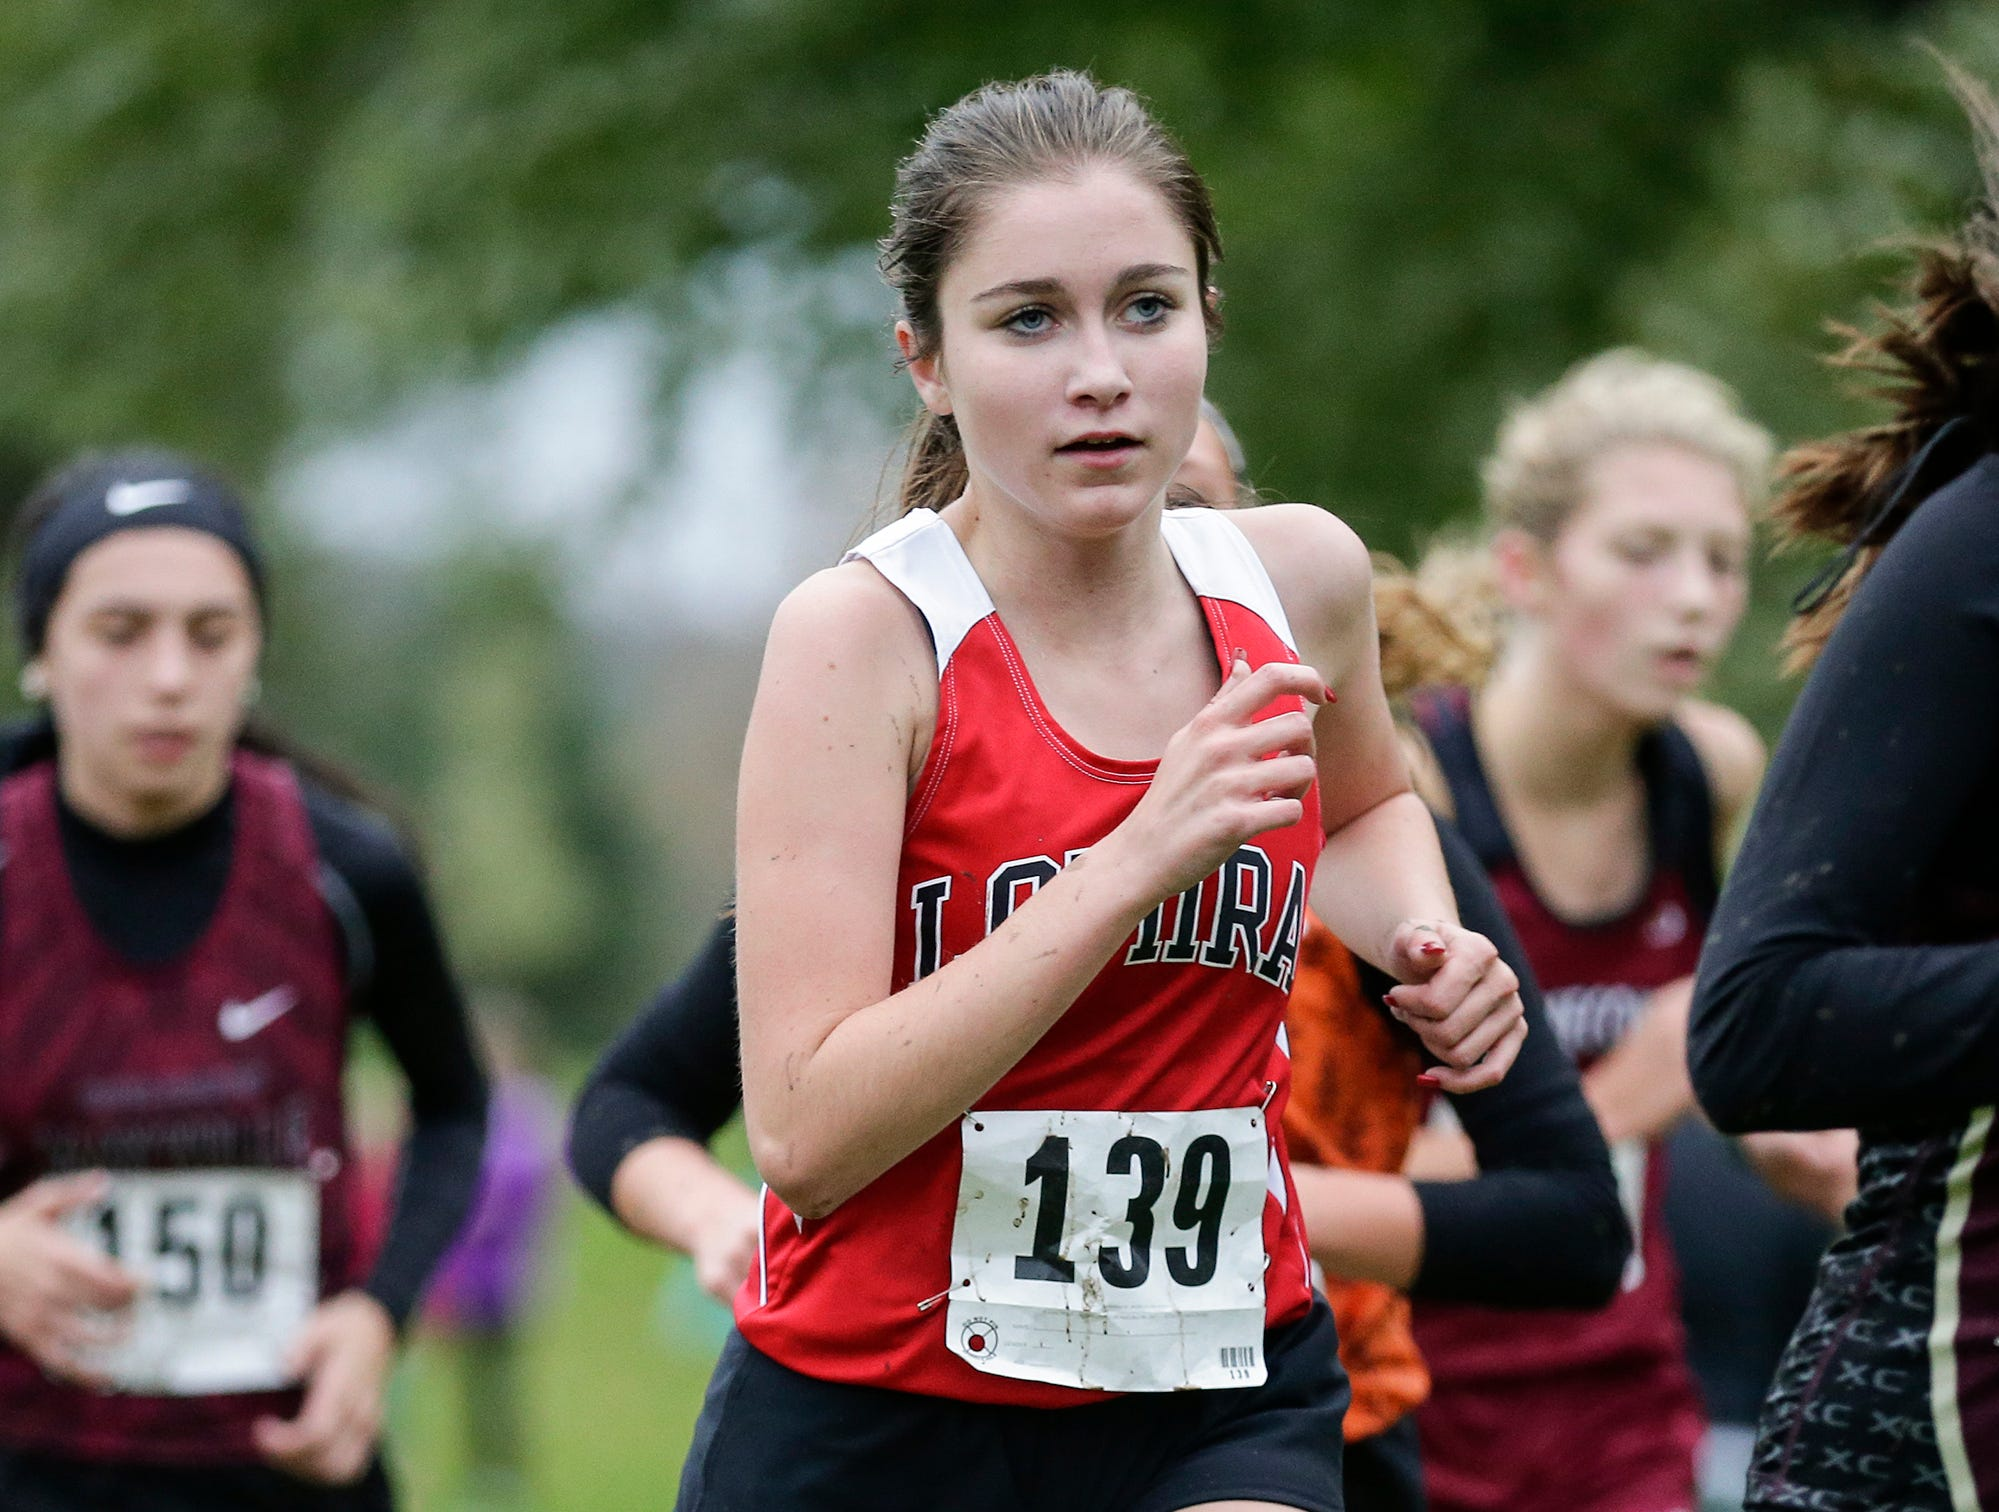 Lomira High School's Emilia Weiss runs in the WIAA Division two Mayville sectional cross country meet at the Mayville golf course Friday, October 19, 2018. Doug Raflik/USA TODAY NETWORK-Wisconsin